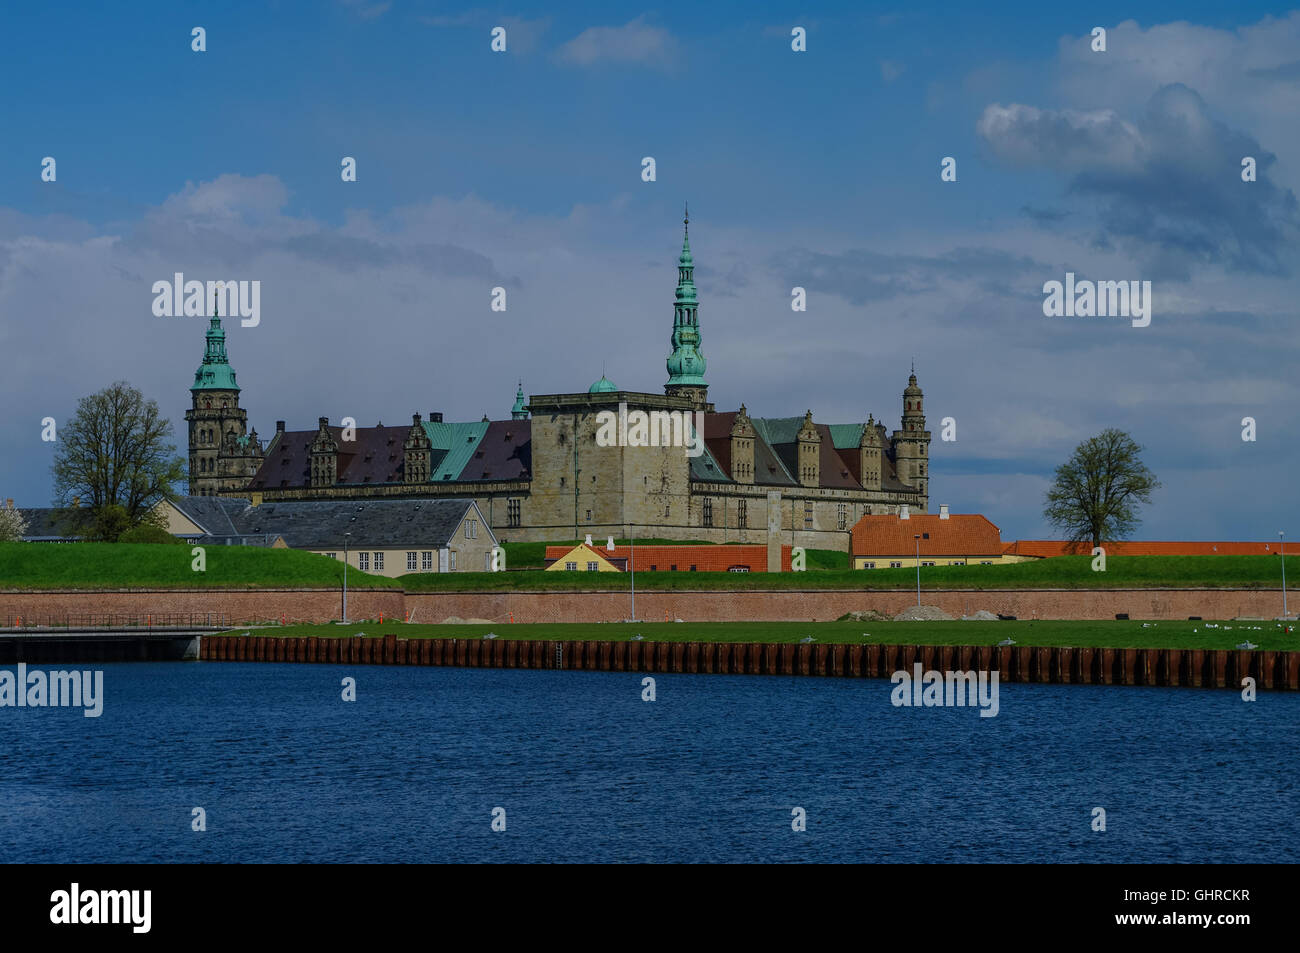 Castle and fortoress of Kronborg, home of Shakespeare's Hamlet. Denmark - Stock Image